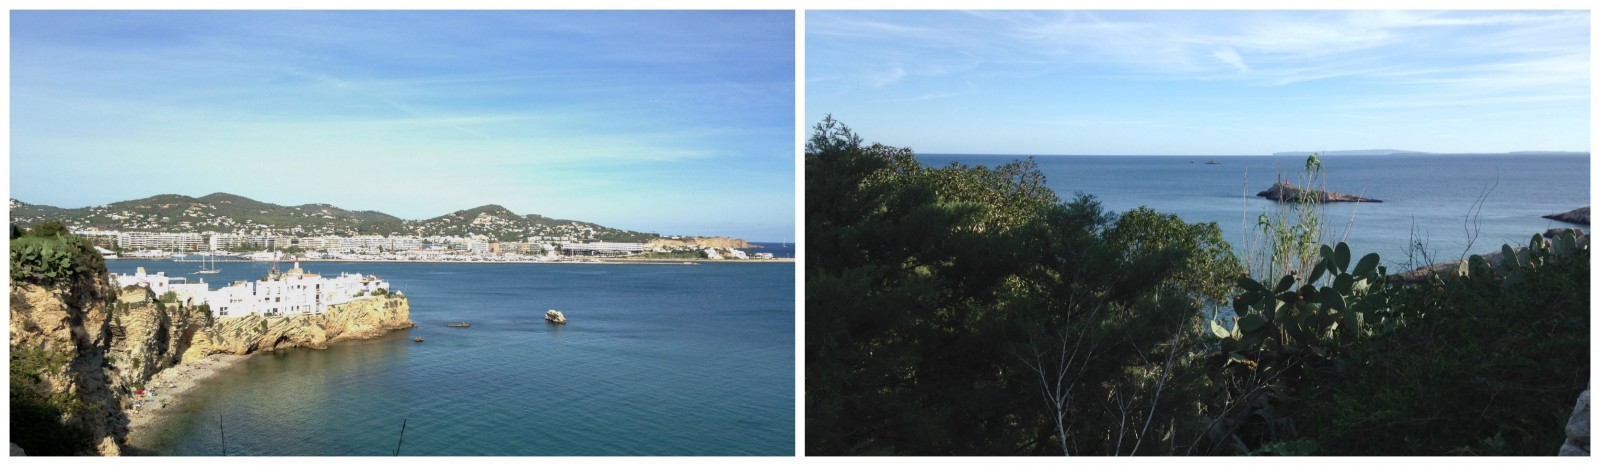 The view from Ibiza town onto the sea